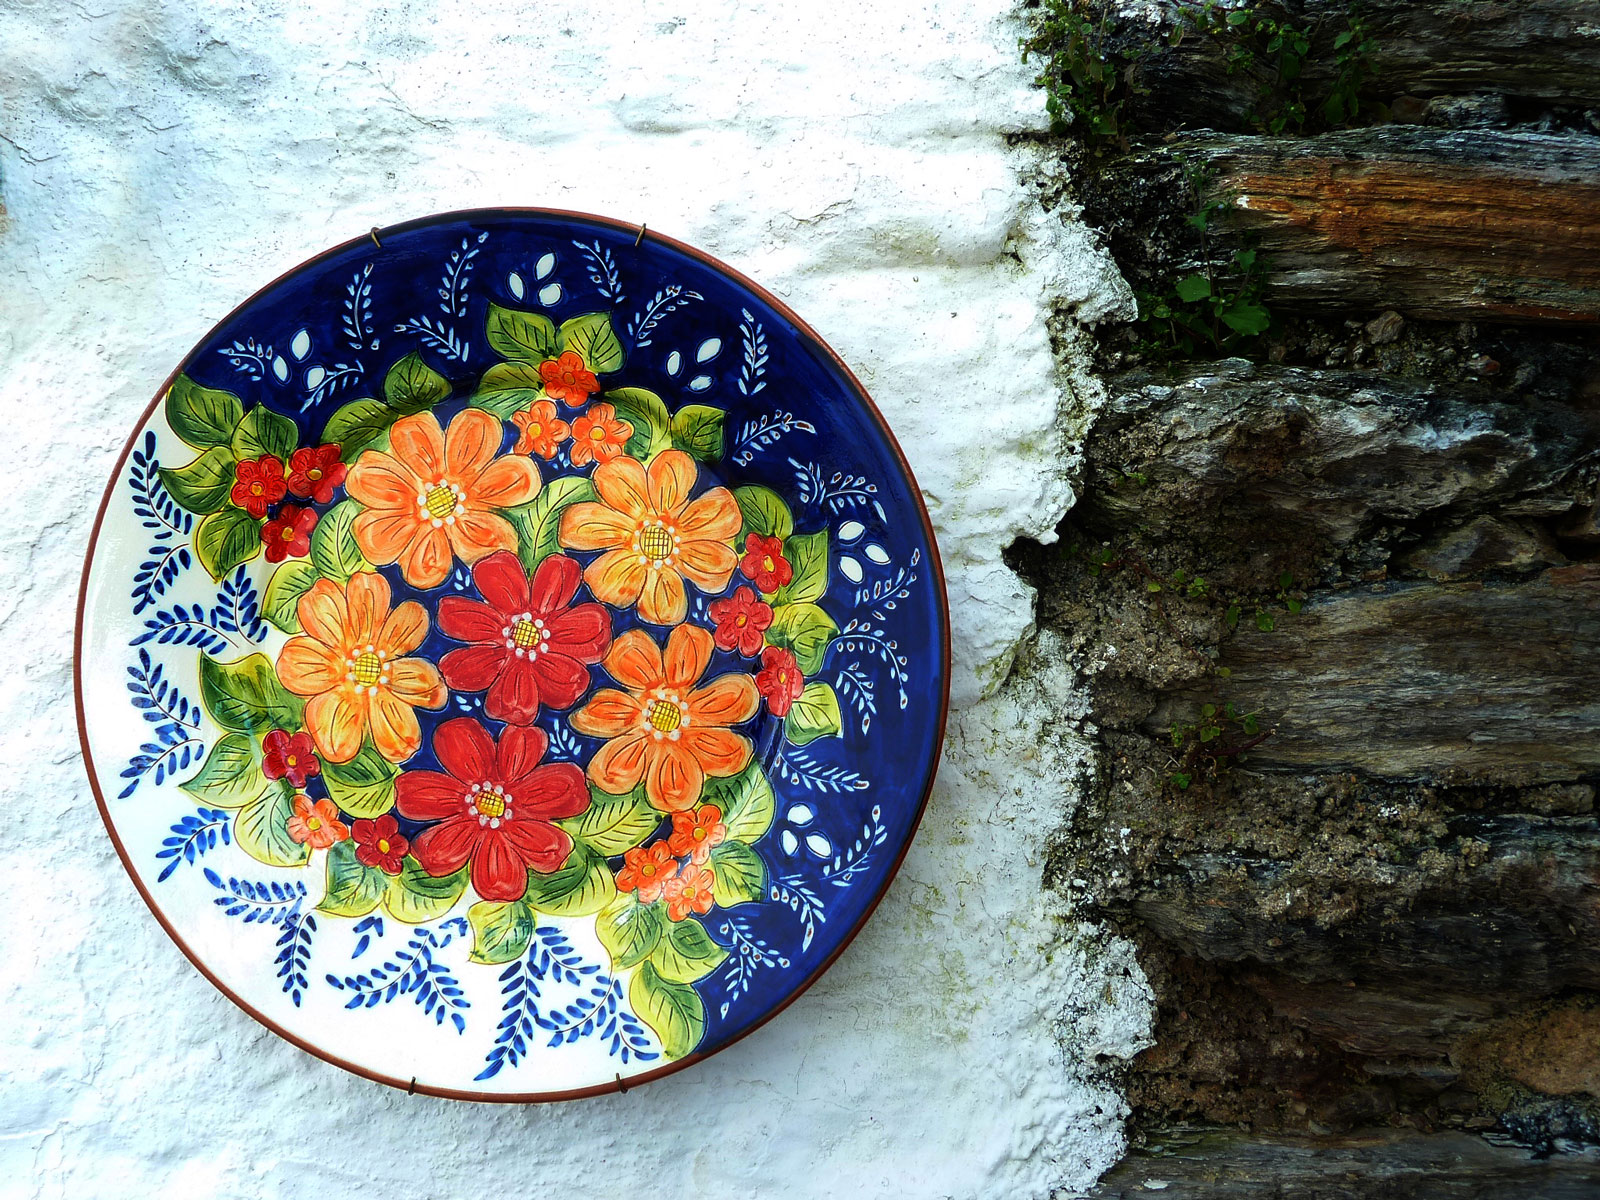 Best 5 Unique Souvenirs from Portugal - Buy Pottery